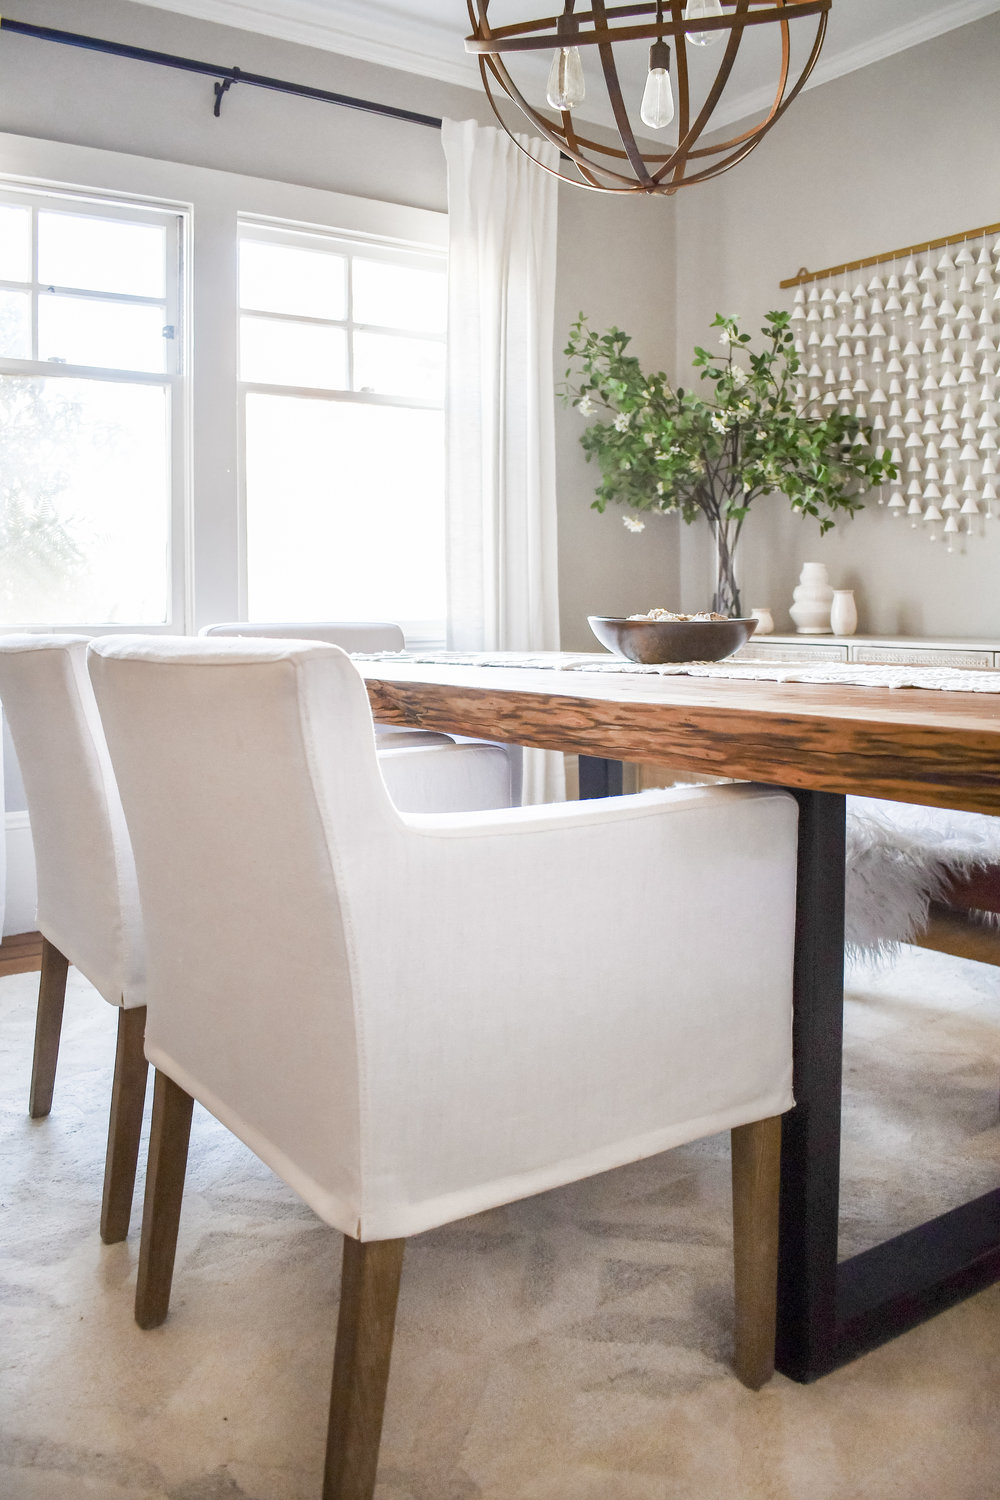 Angela Grace Design // Filbert Dining // San Francisco and SF Bay Area Interior Designer, Decorator